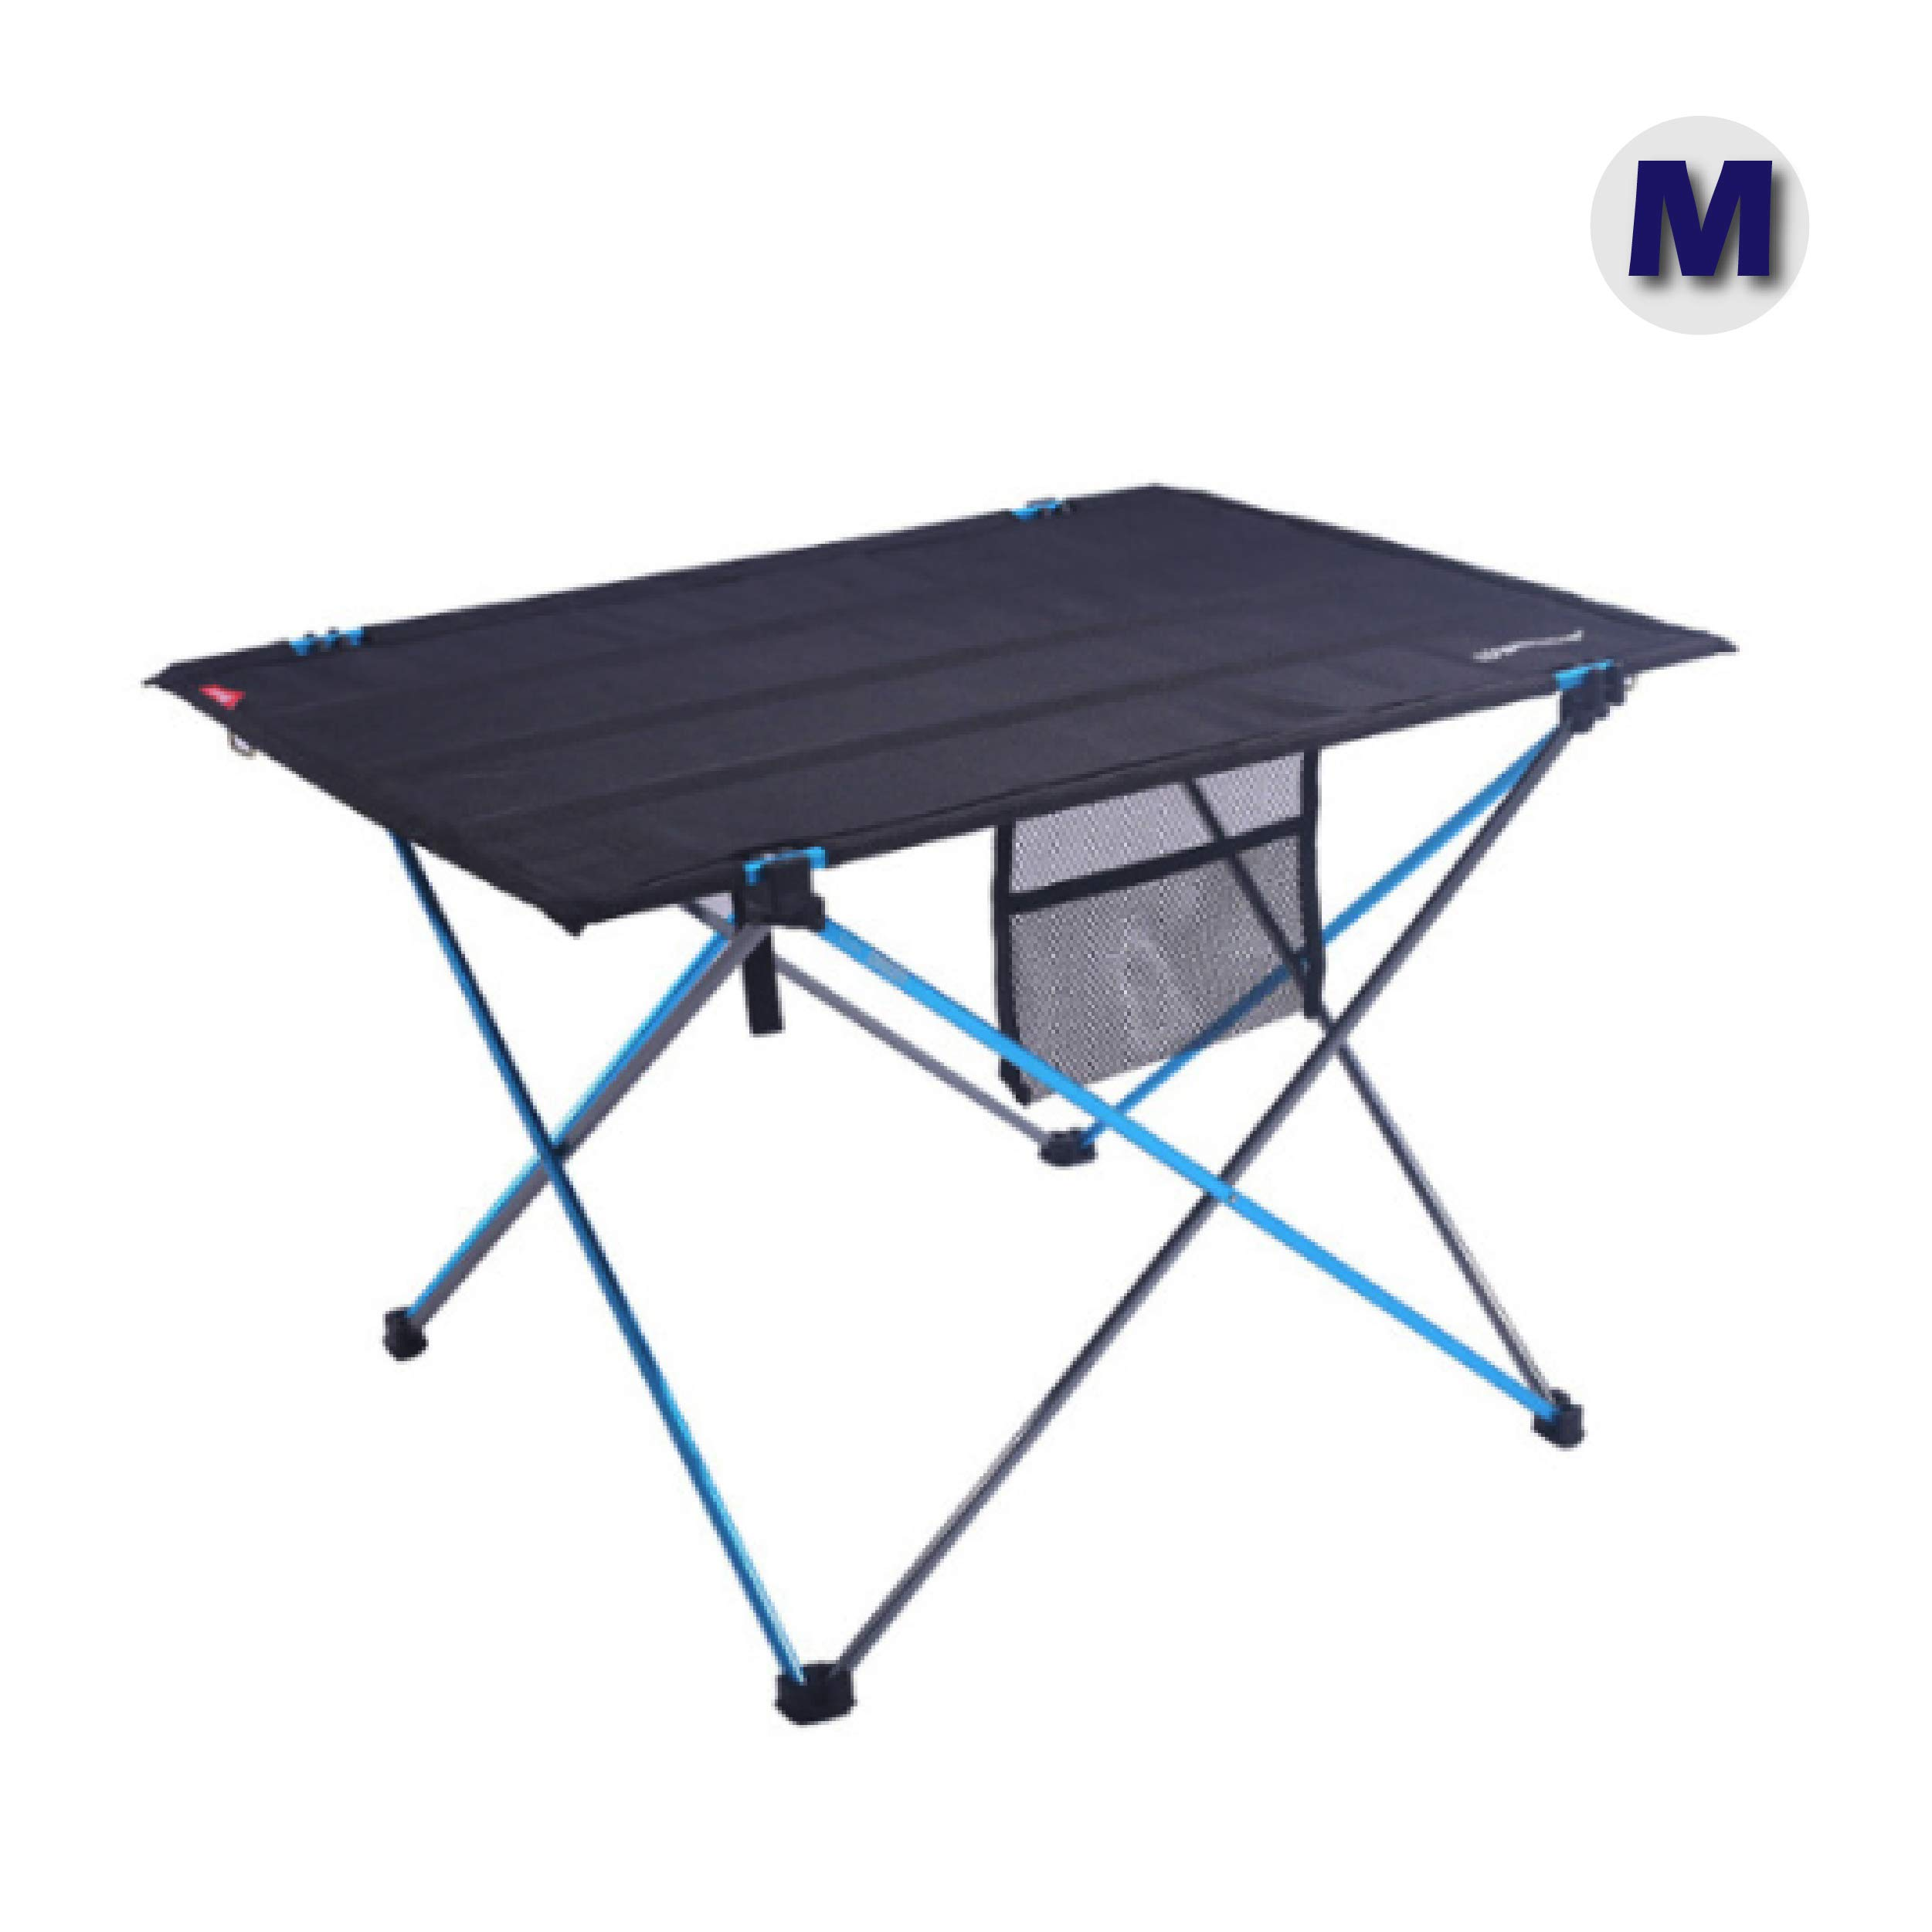 Foldable Camping Picnic Tables Portable Compact Lightweight Roll-up BBQ Table